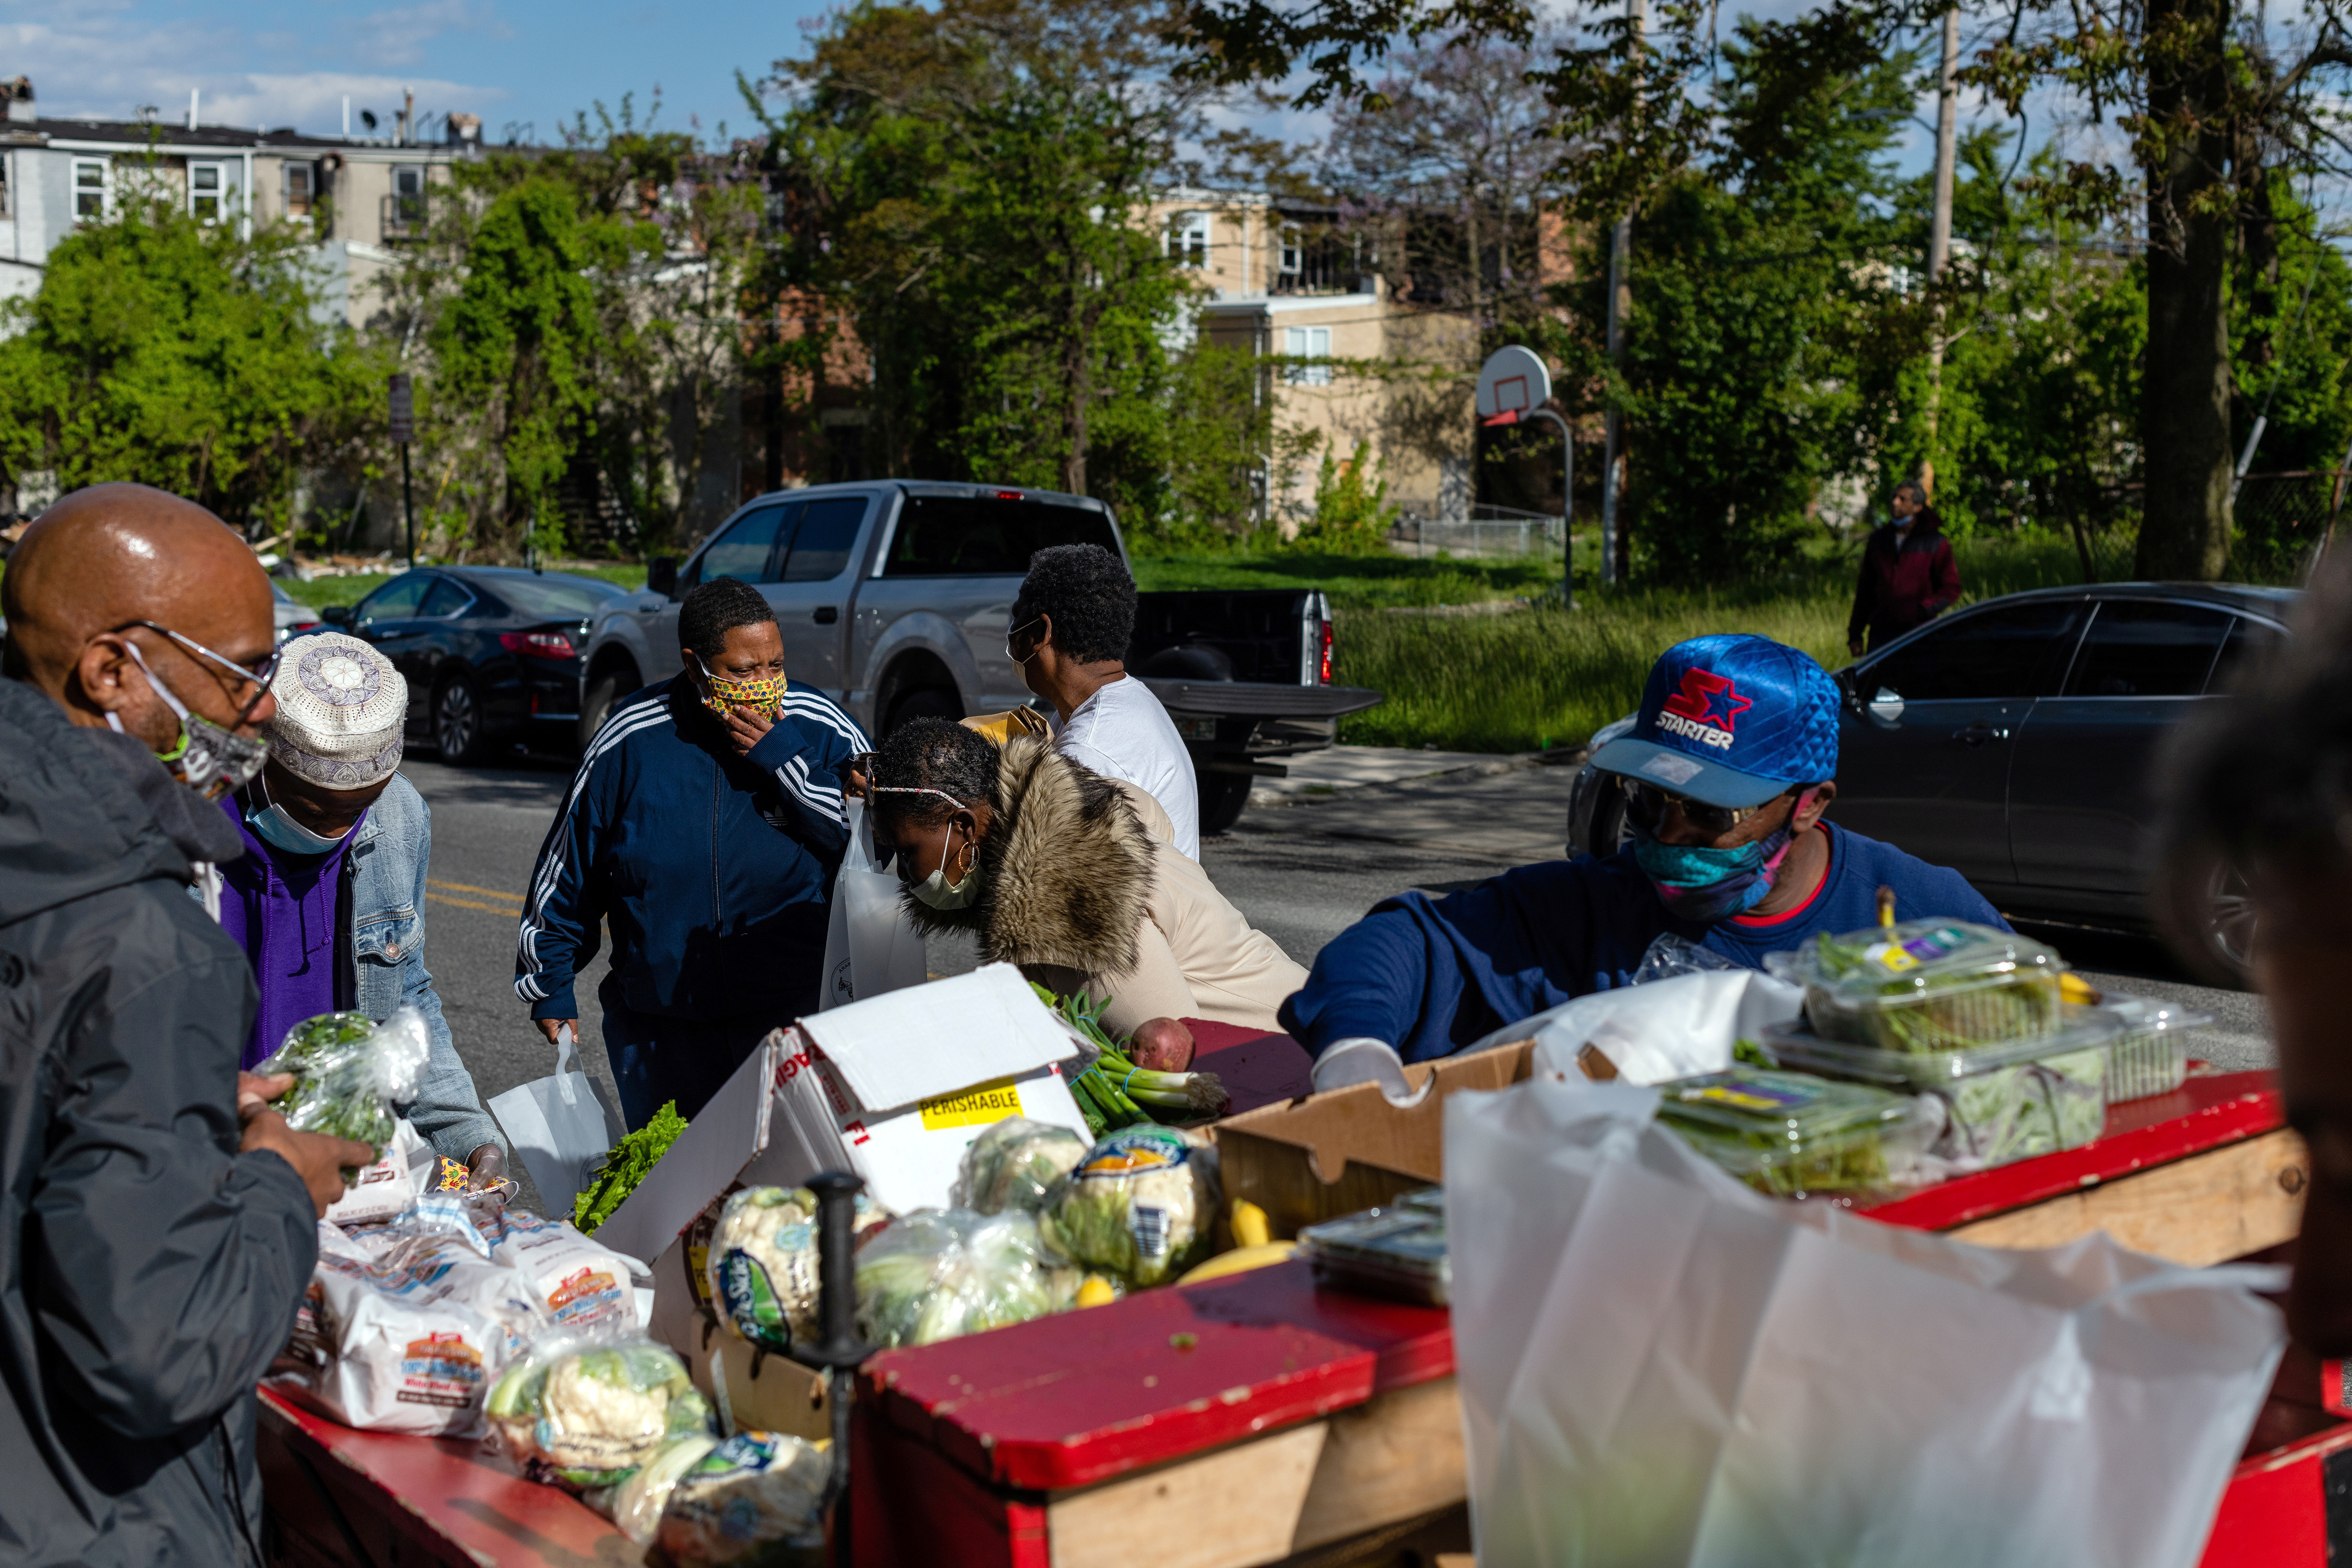 Residents pick out supplies at a food giveaway in West Baltimore amid the coronavirus outbreak.